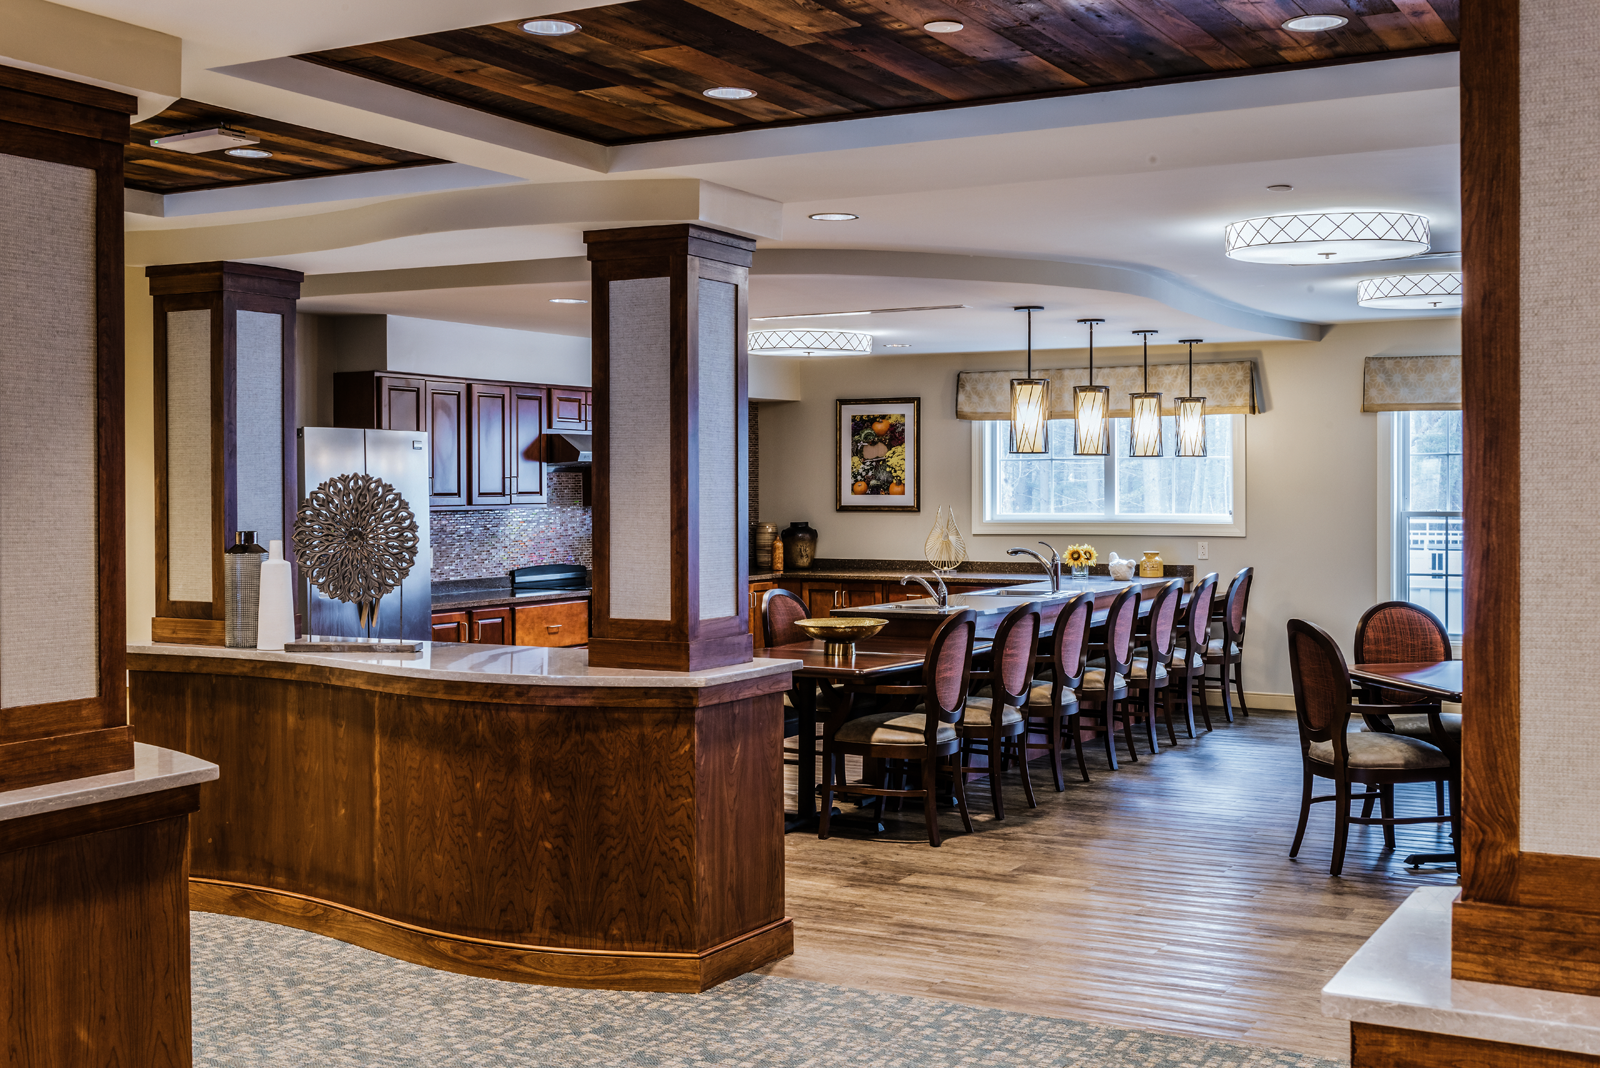 Country kitchen interior design for assisted living community